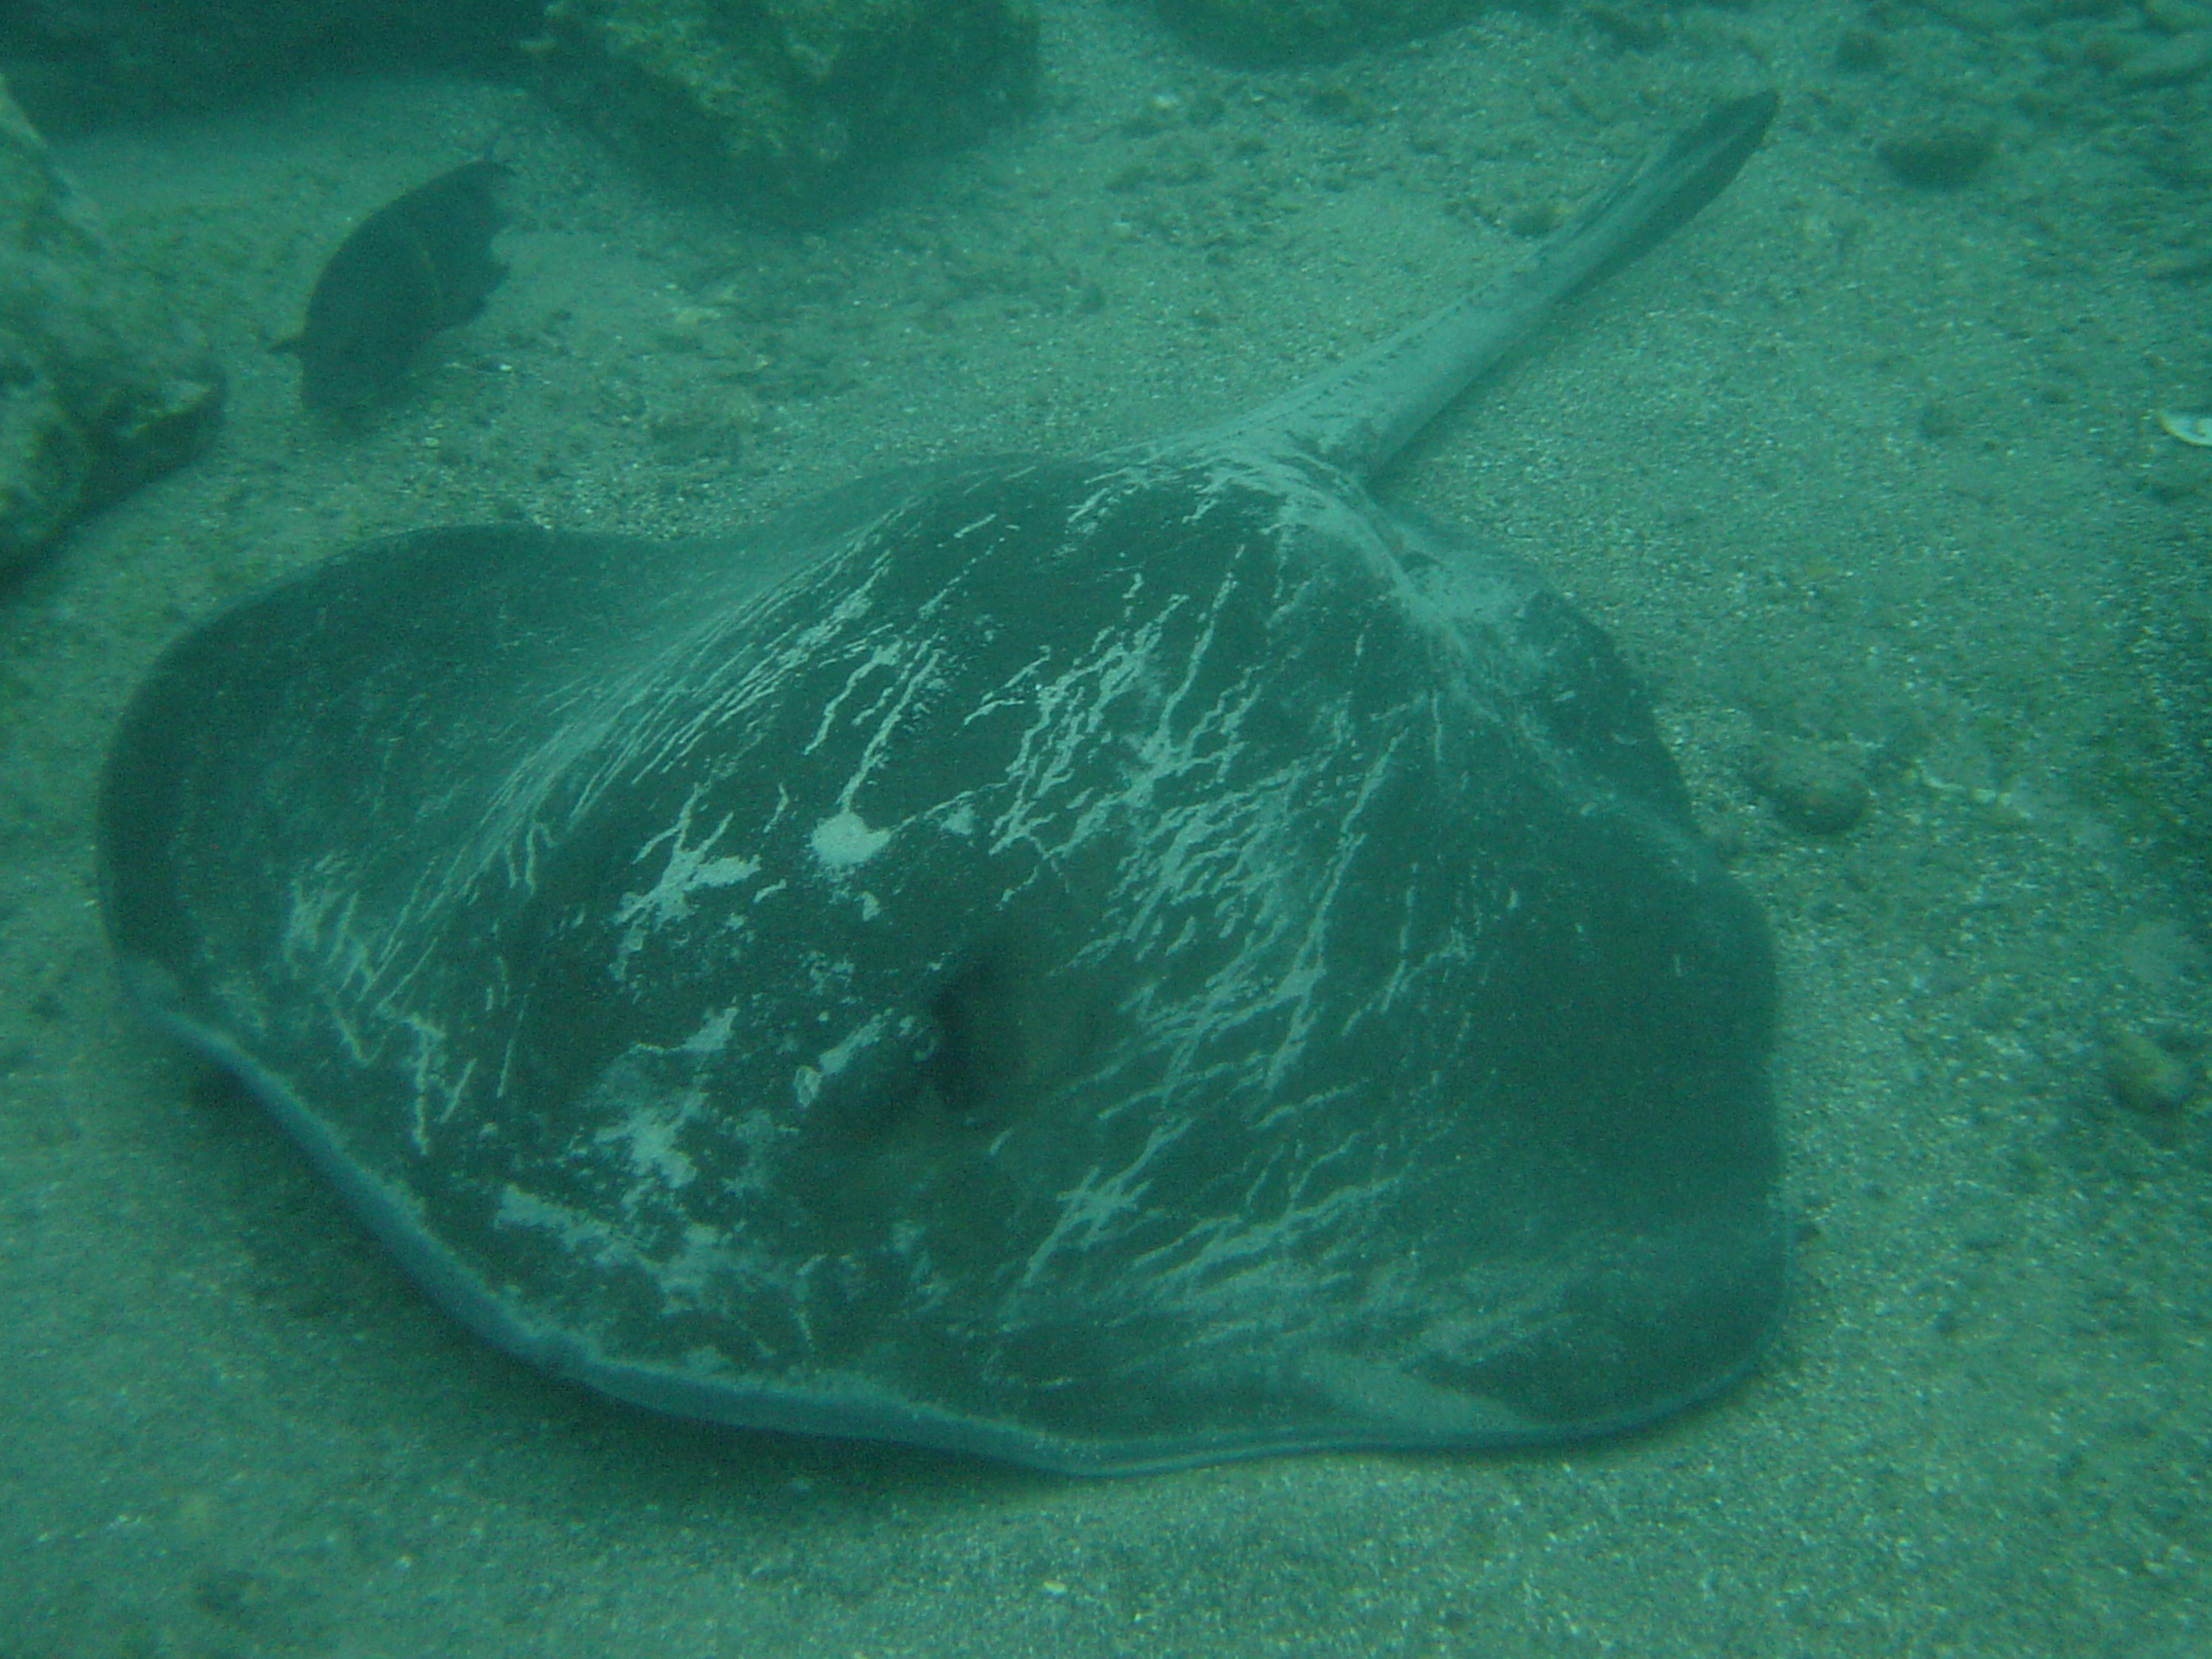 Galapagos Islands underwater discoveries